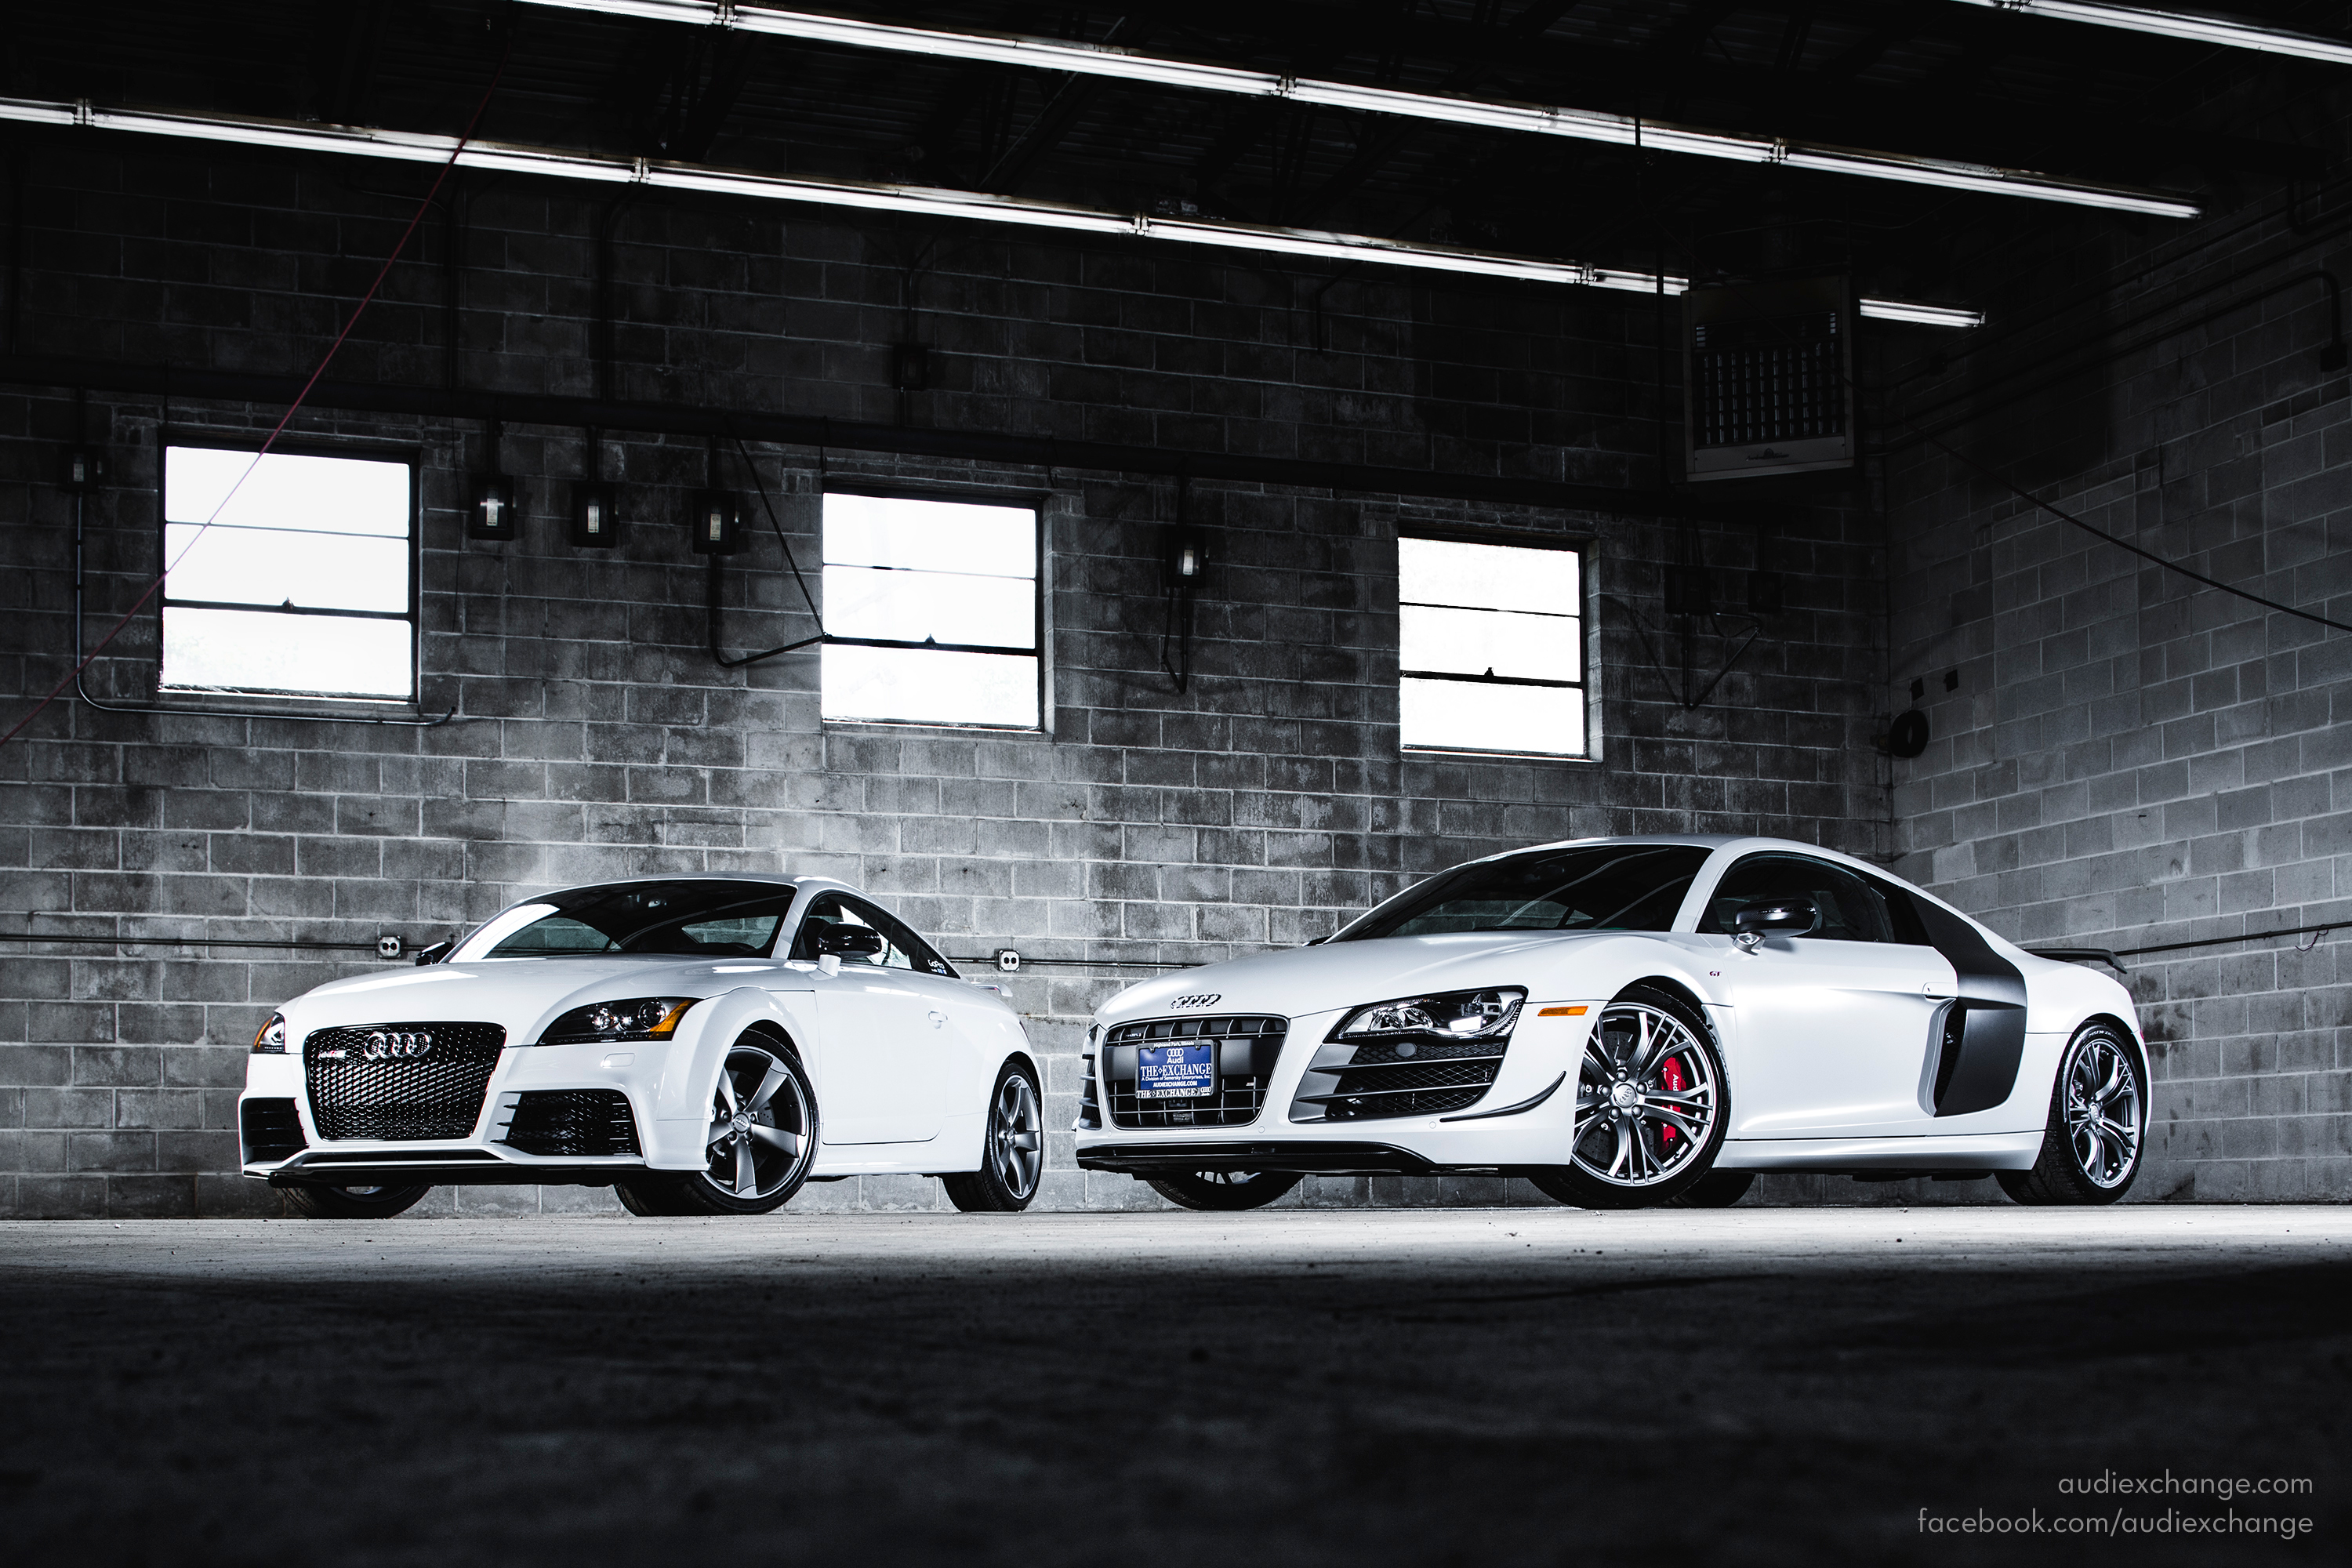 Audi TT RS and R8 GT wallpaper from The Audi Exchange   Fourtitudecom 3000x2000